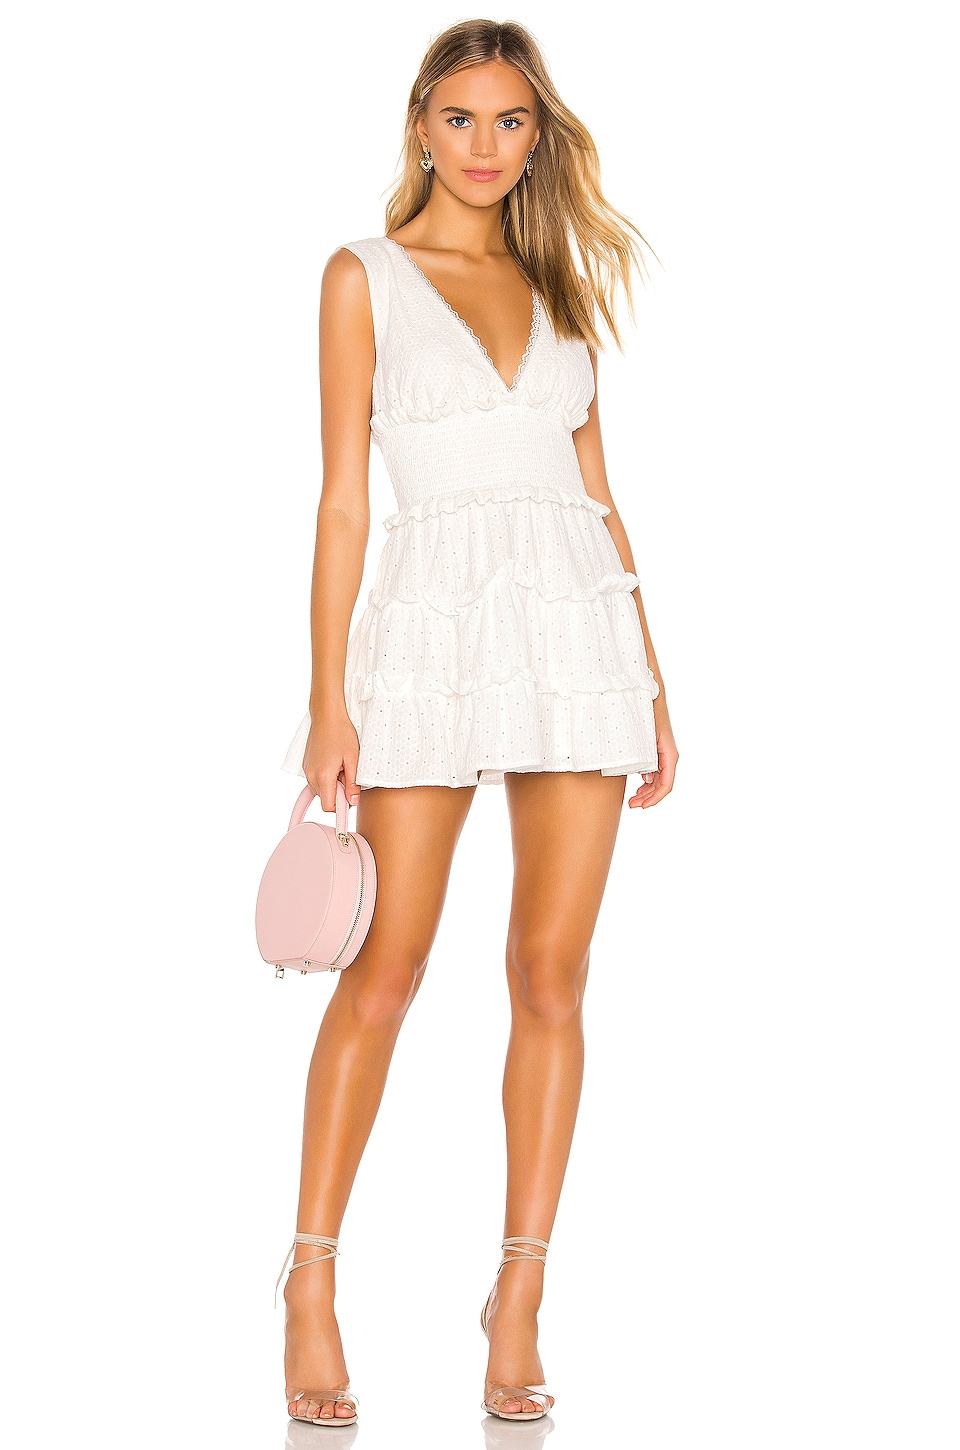 Las Palmas Mini Dress             NBD                                                                                                       CA$ 316.46 10